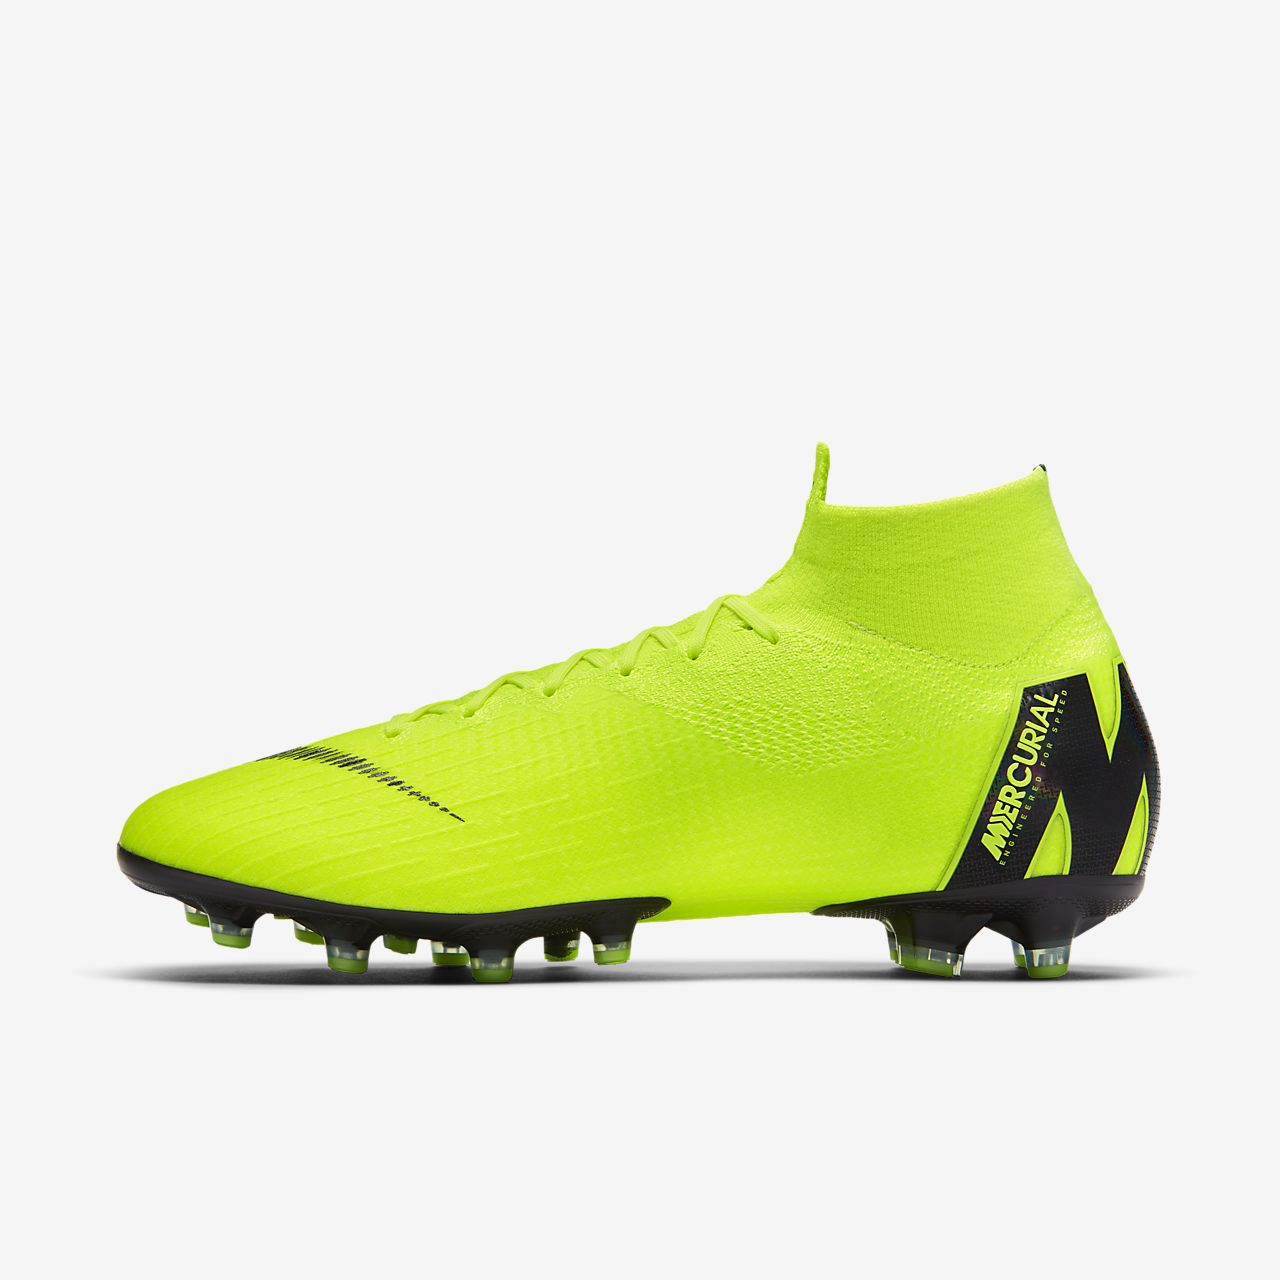 Nike Mercurial Superfly 360 Elite AG-PRO Artificial-Grass Football ... 14270db82